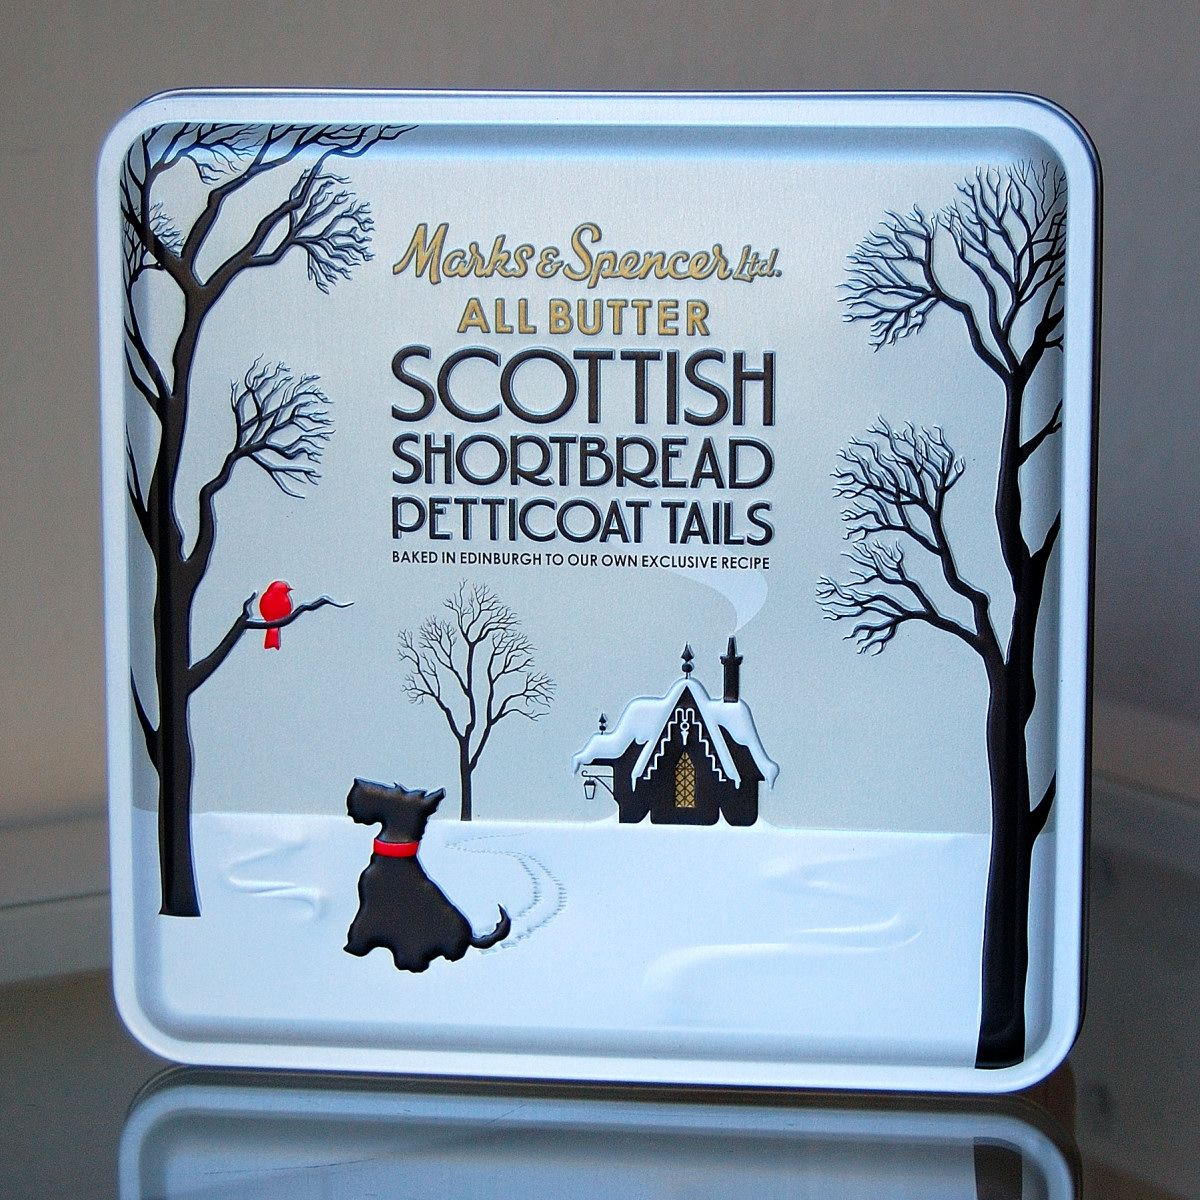 The New Marks Spencer Christmas Tins Christmas Beer Beer Christmas Gifts Marks And Spencer